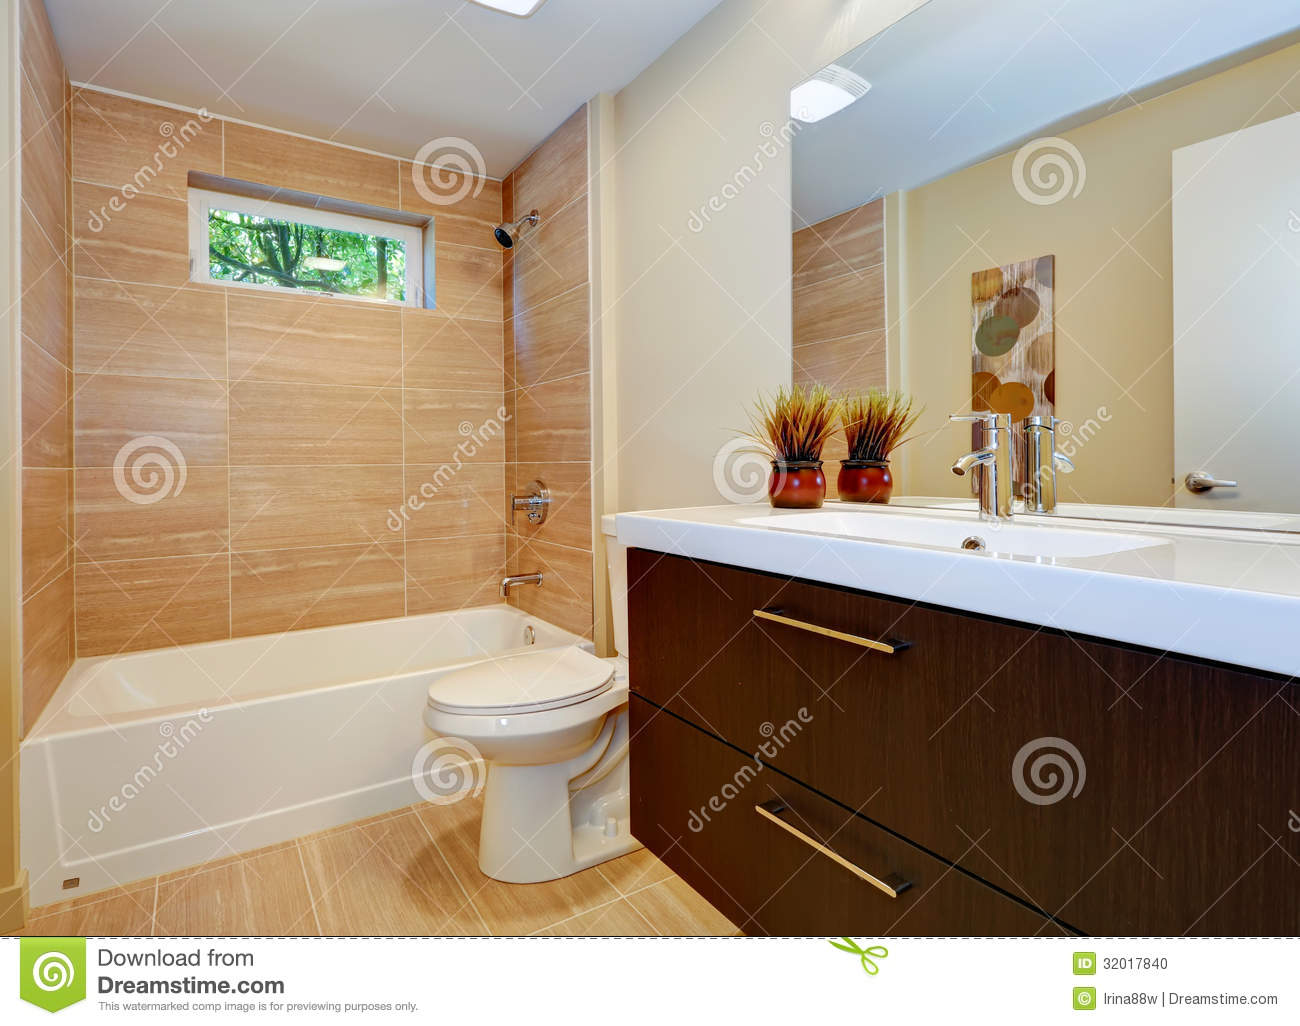 Modern new bathroom design with sink and white tub stock for New bathroom ideas images